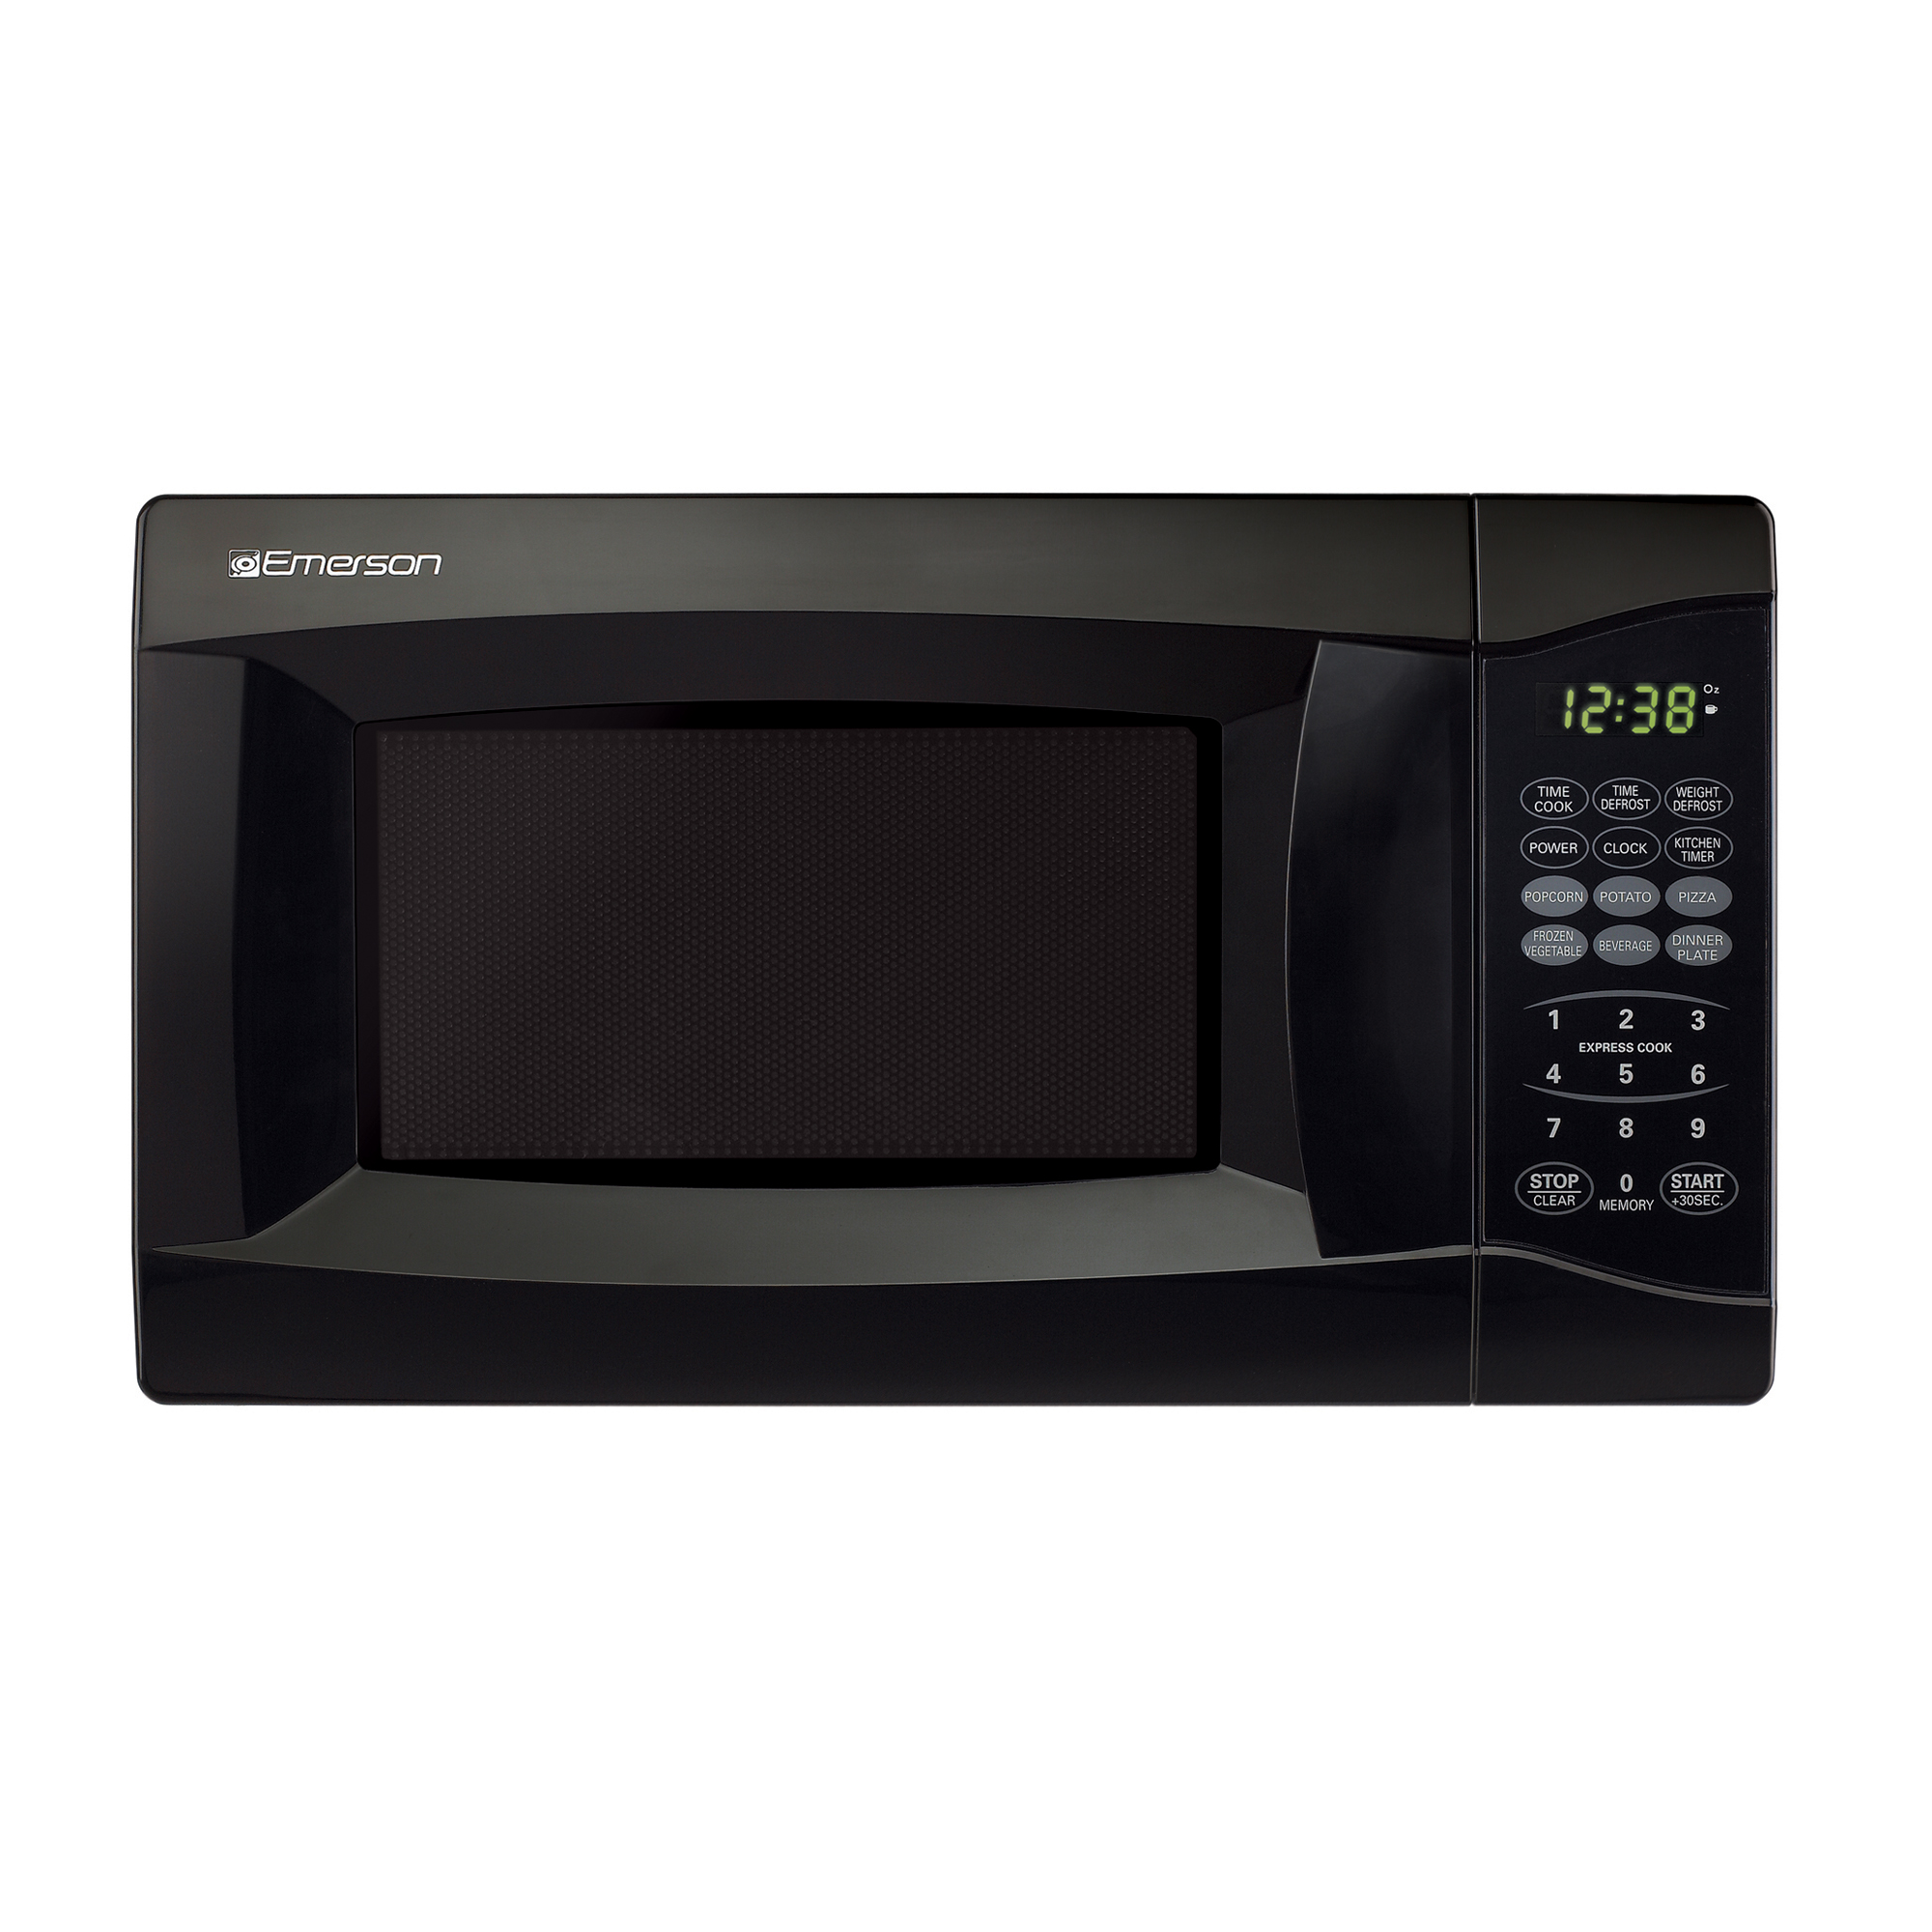 Emerson 0.7 CU. FT. 700 Watt, Touch Control, Black Microwave Oven MW7302B by Emerson Radio Corporation